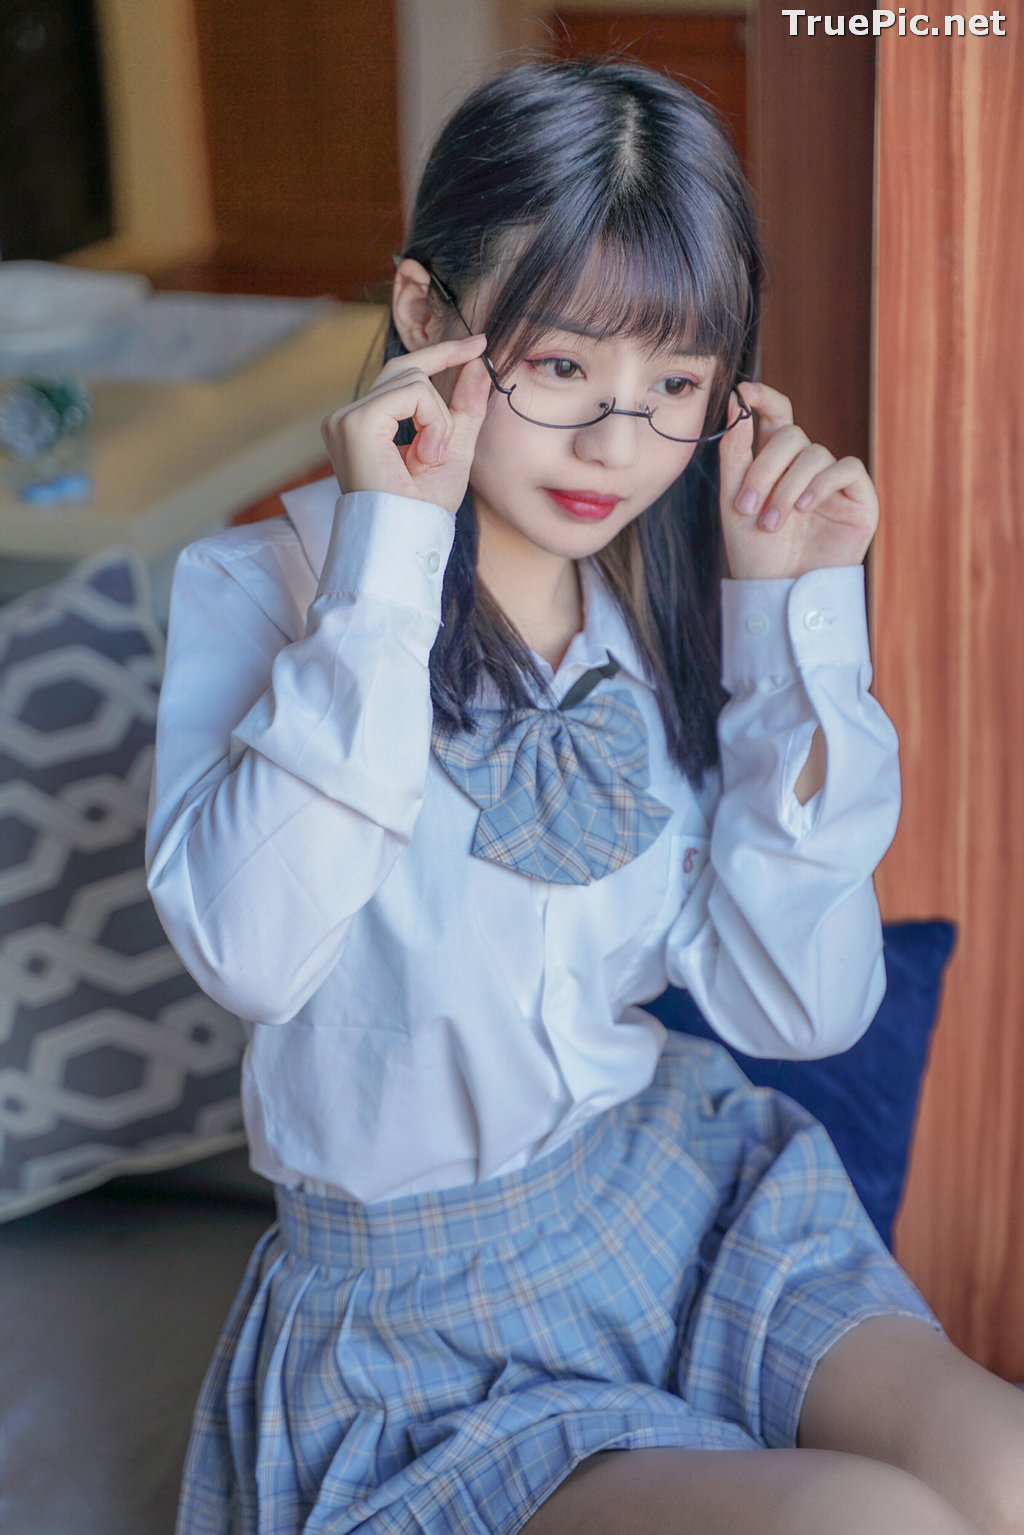 Image [MTCos] 喵糖映画 Vol.047 – Chinese Cute Model – Sexy Student Uniform - TruePic.net - Picture-16